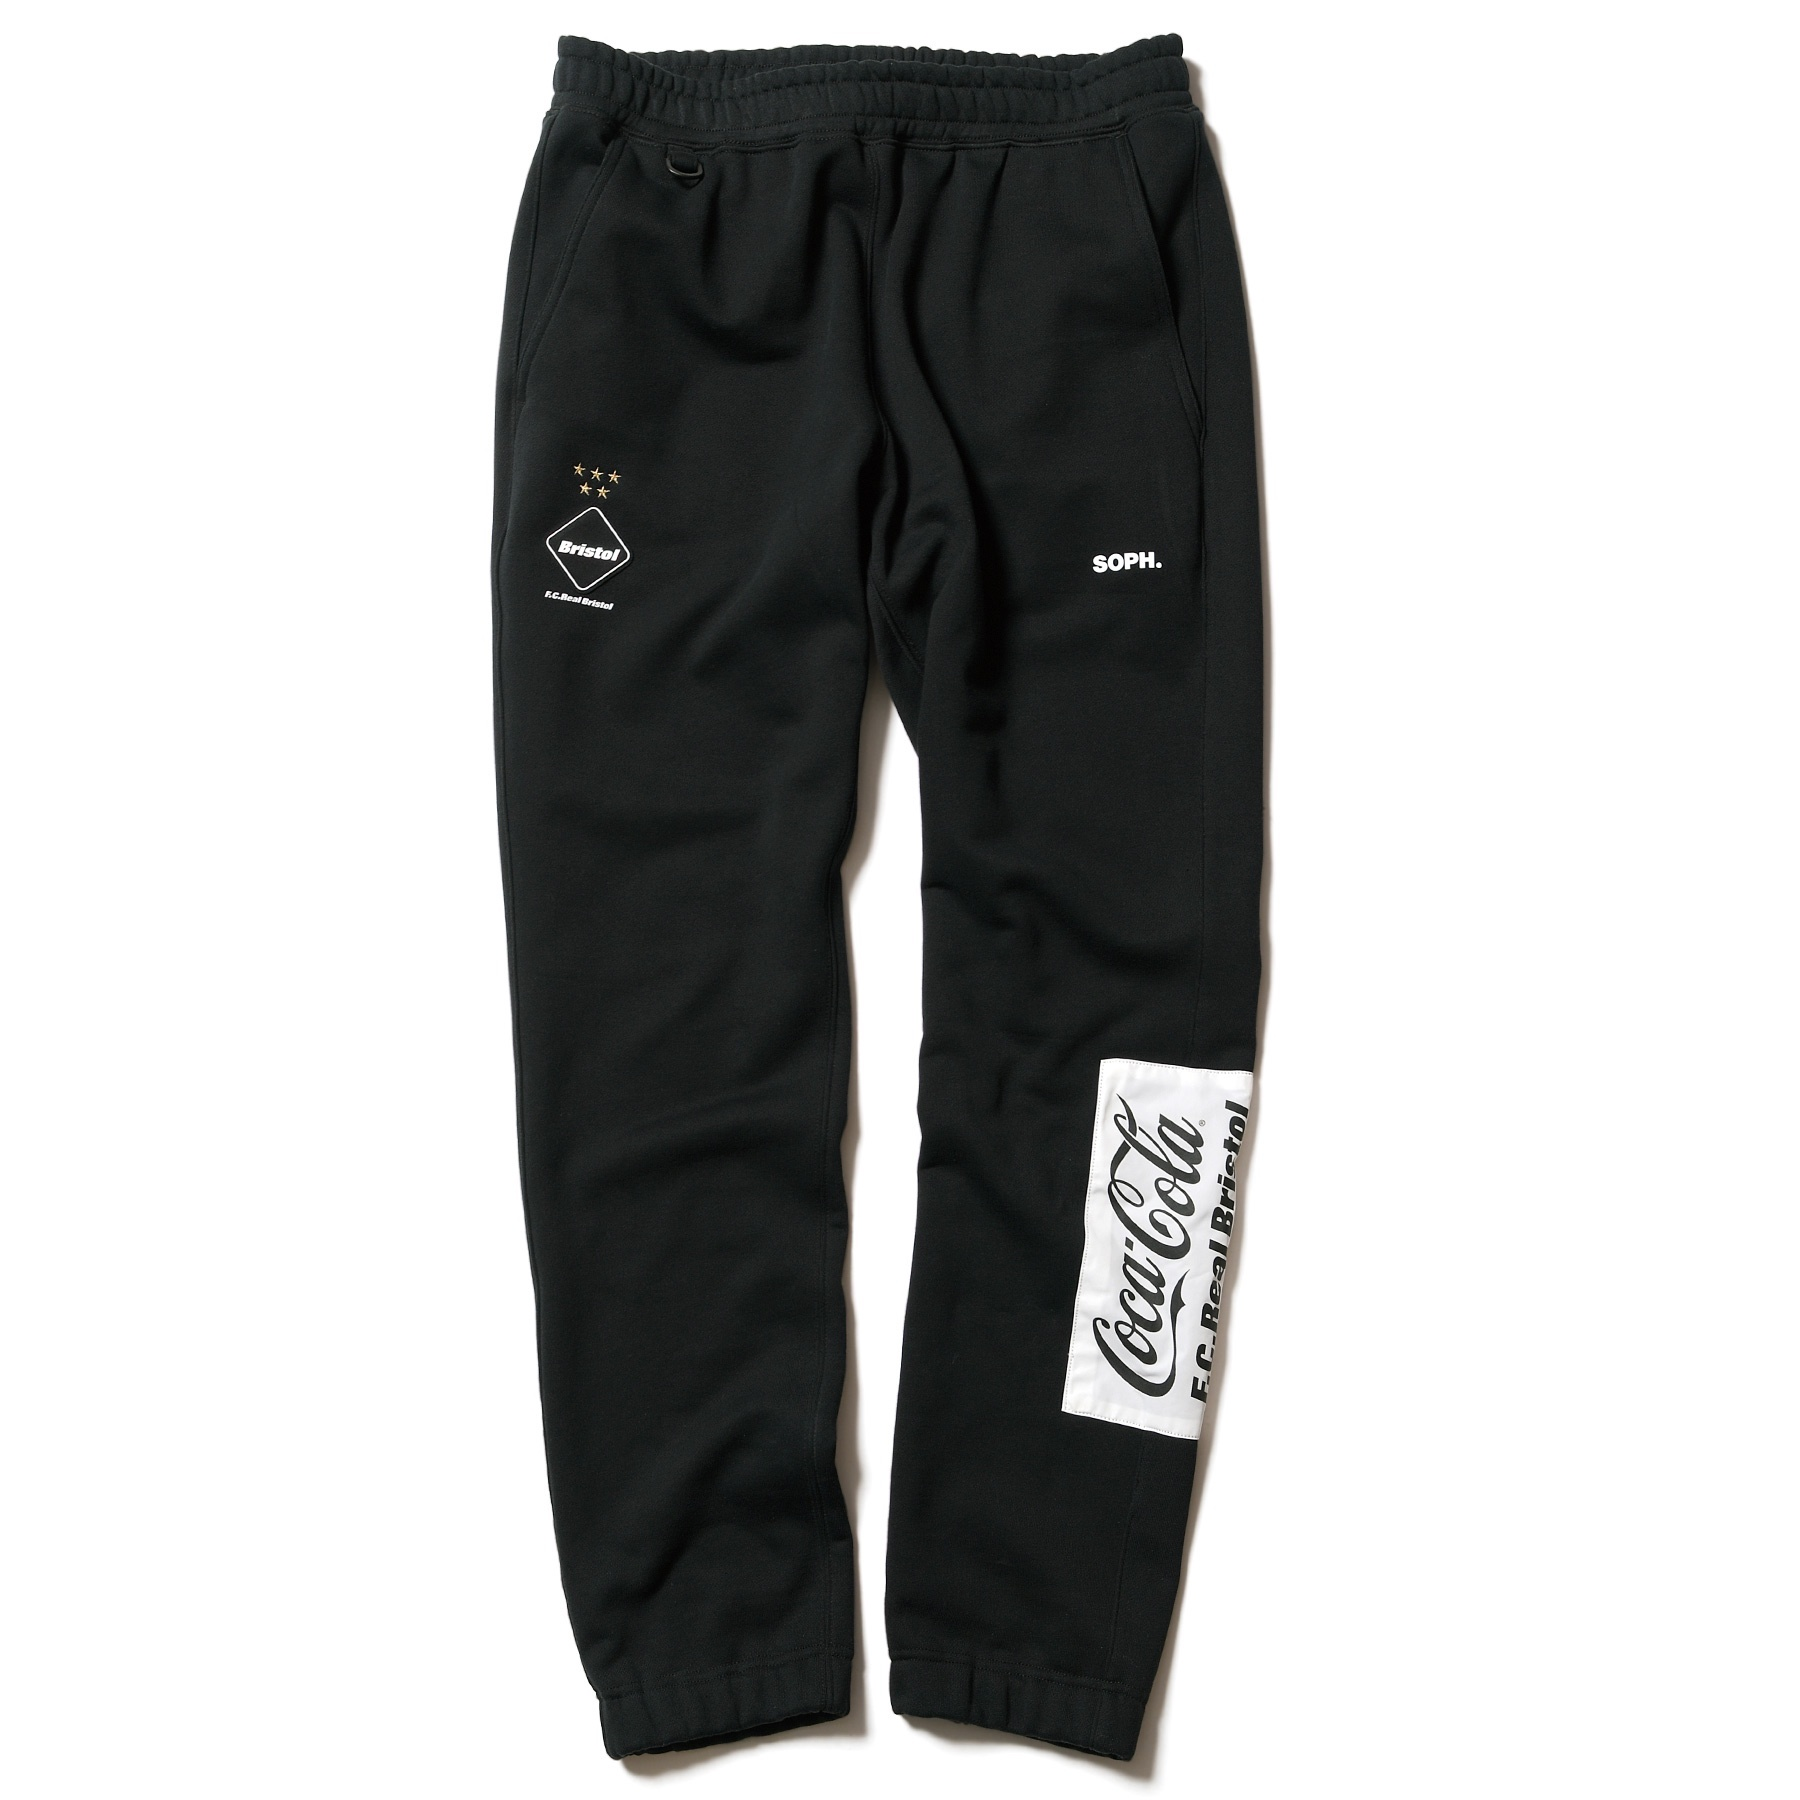 F.C.Real Bristol / COCA-COLA PATCHED SWEAT PANTS (Black)